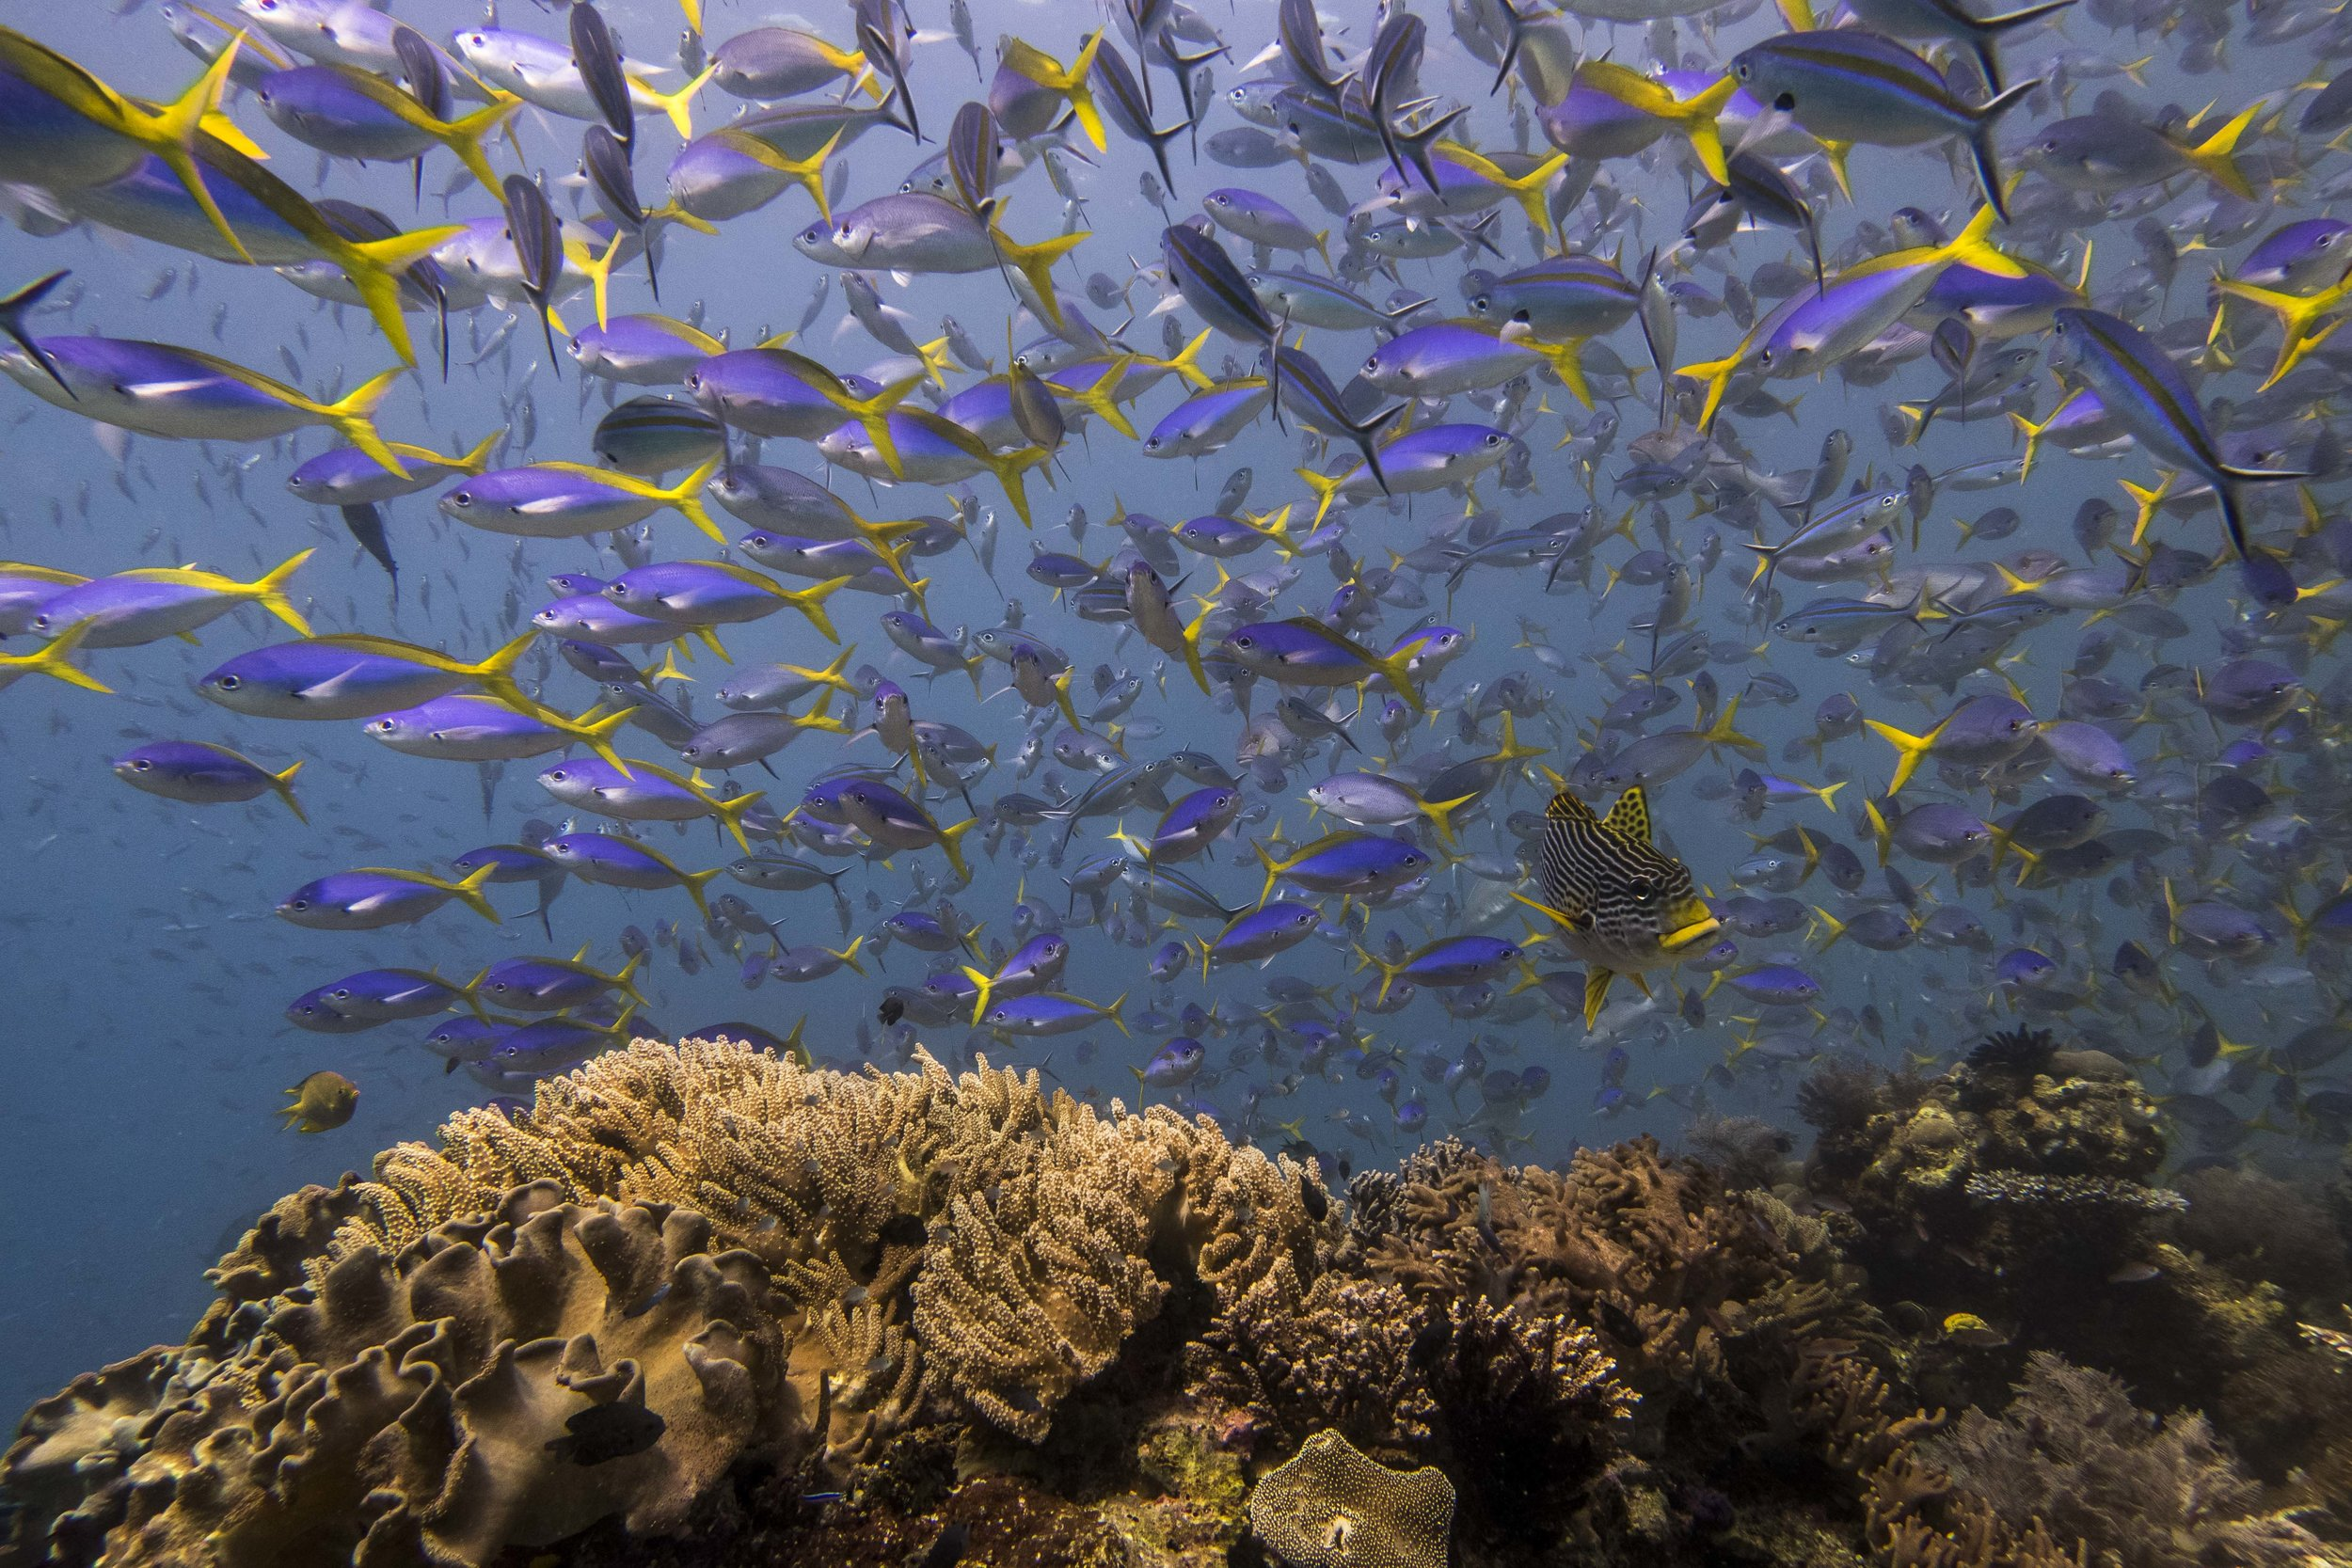 school of yellow and blueback fusilier (Caesio teres) - Yellow and blueback fusilier fish are colorful, medium-sized fish that feed on zooplankton. The intruder in the middle of them, with yellow thick lips, is an oblique-banded sweetlips.